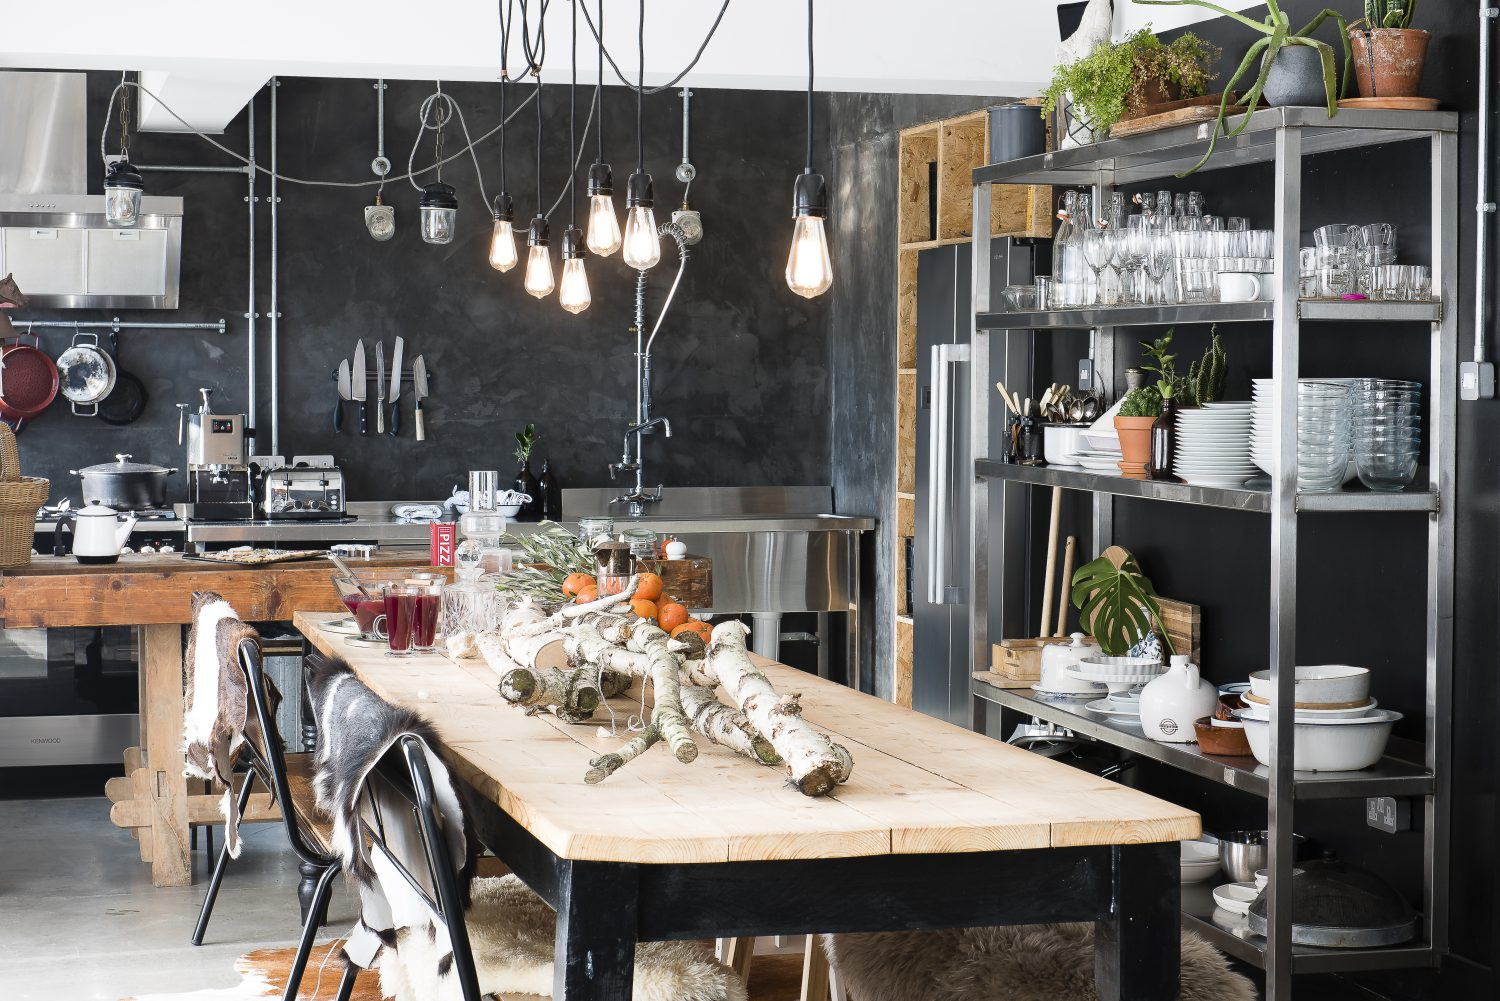 Matt made the kitchen table with old scaffolding planks, so it would be big enough to seat 14 people. The kitchen island behind is an old carpentry table given to them by the previous owner of the house – after they had been looking for one for ages 'a magical gift'